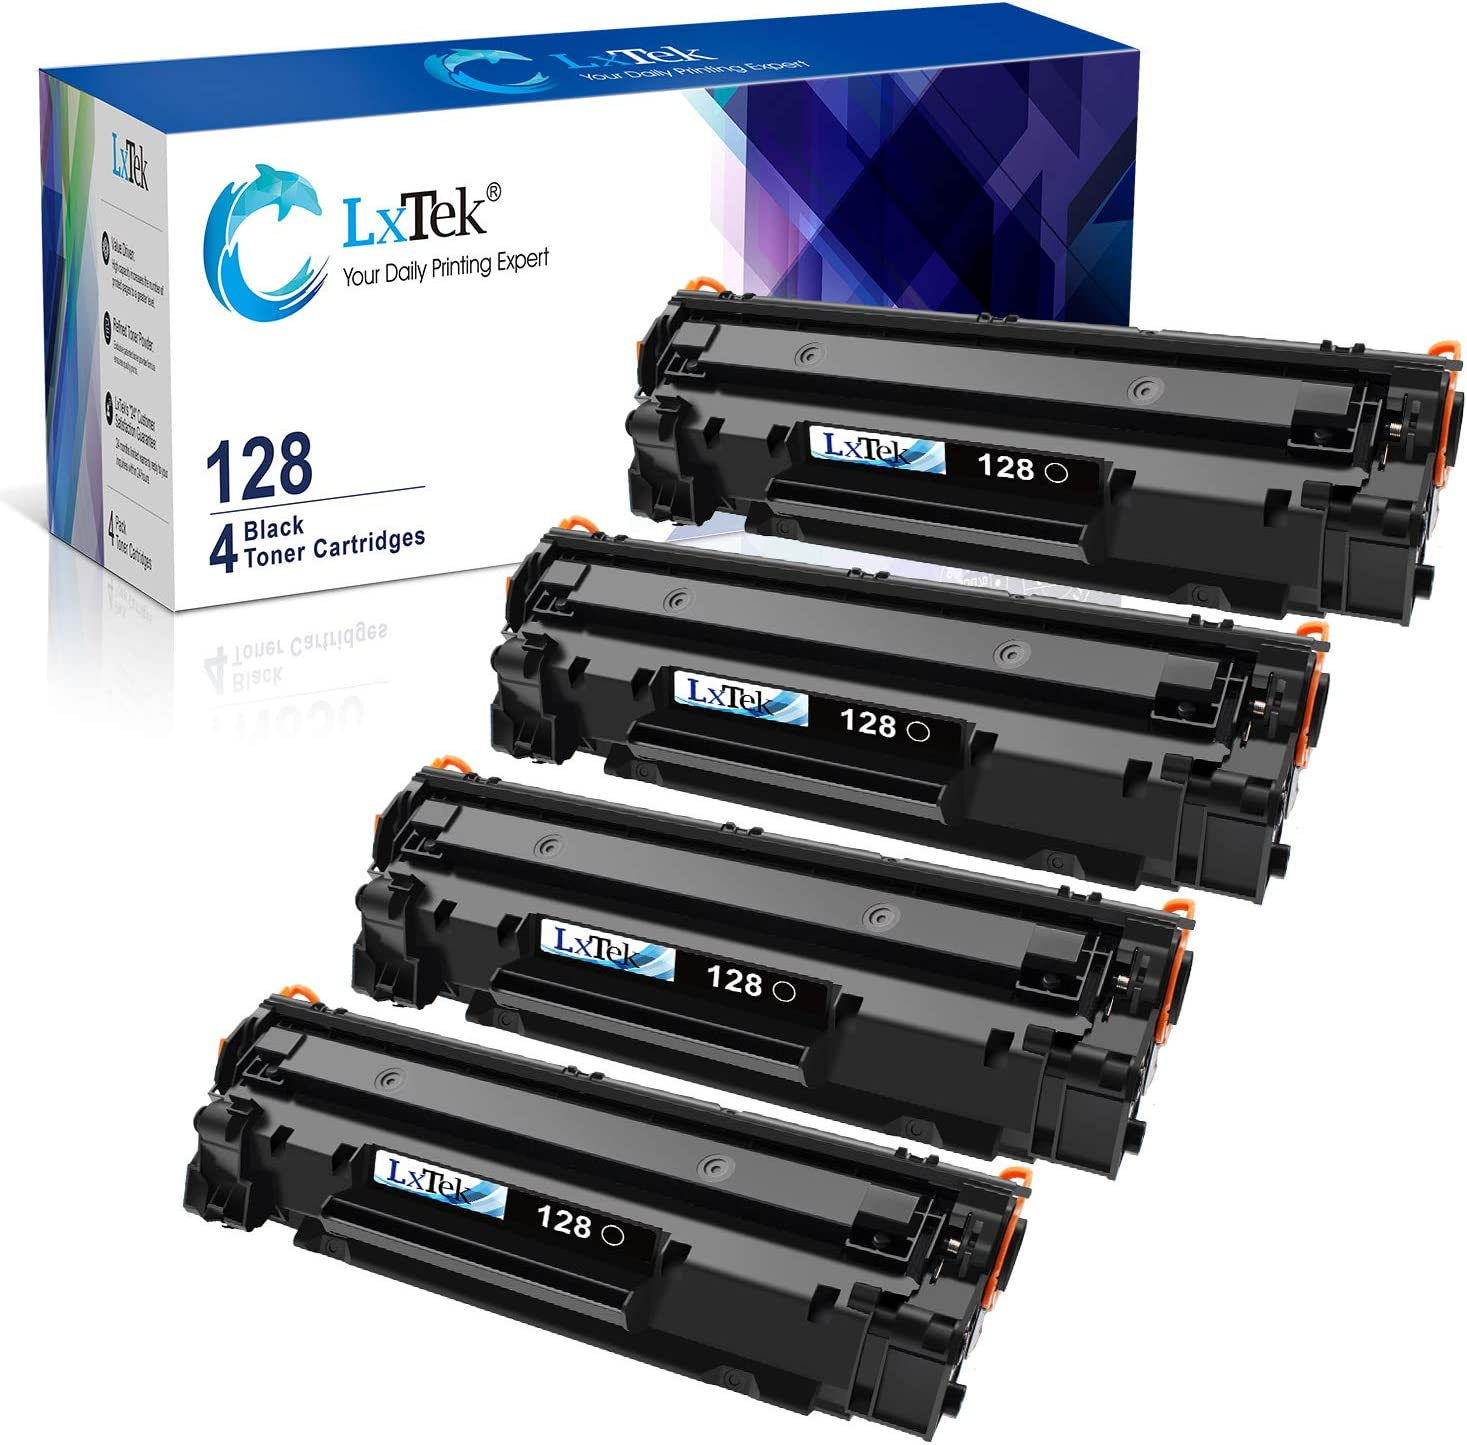 AM-Ink 1-Pack Compatible 128 CRG-128 3500B001AA Toner Cartridge Replacement for Canon ImageCLASS D530 D550 MF4570dw MF4770n MF4880dw MF4890dw MF4450 MF4420n FaxPhone L190 L100 Printer Black